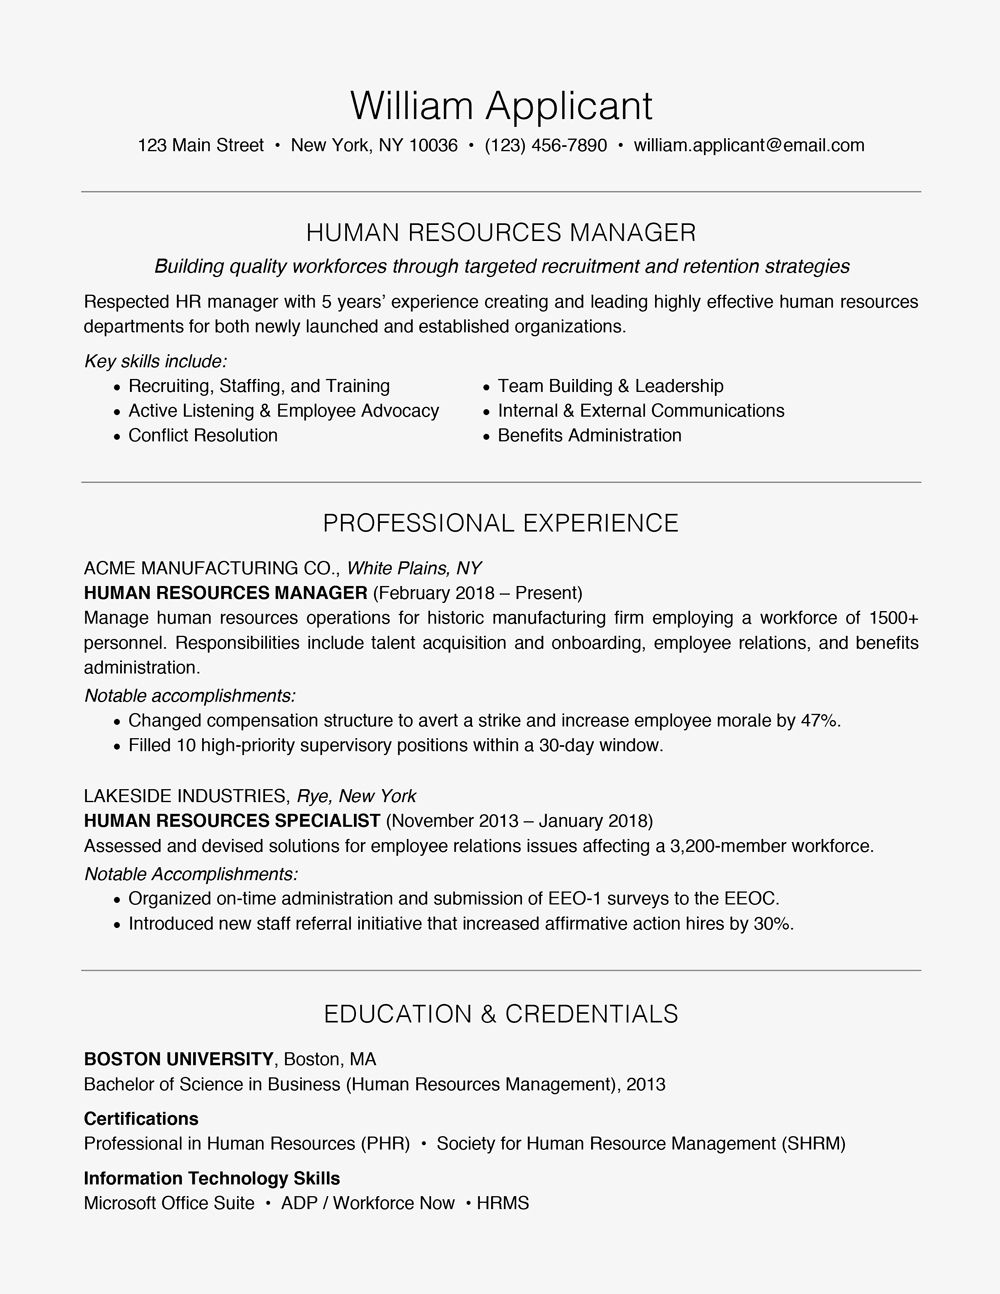 77 Elegant Photos Of Resume Examples 15 Year Old Check More At Https Www Ourpetscrawley Com 77 Elegant Photos Of Resume Examples 15 Year Old